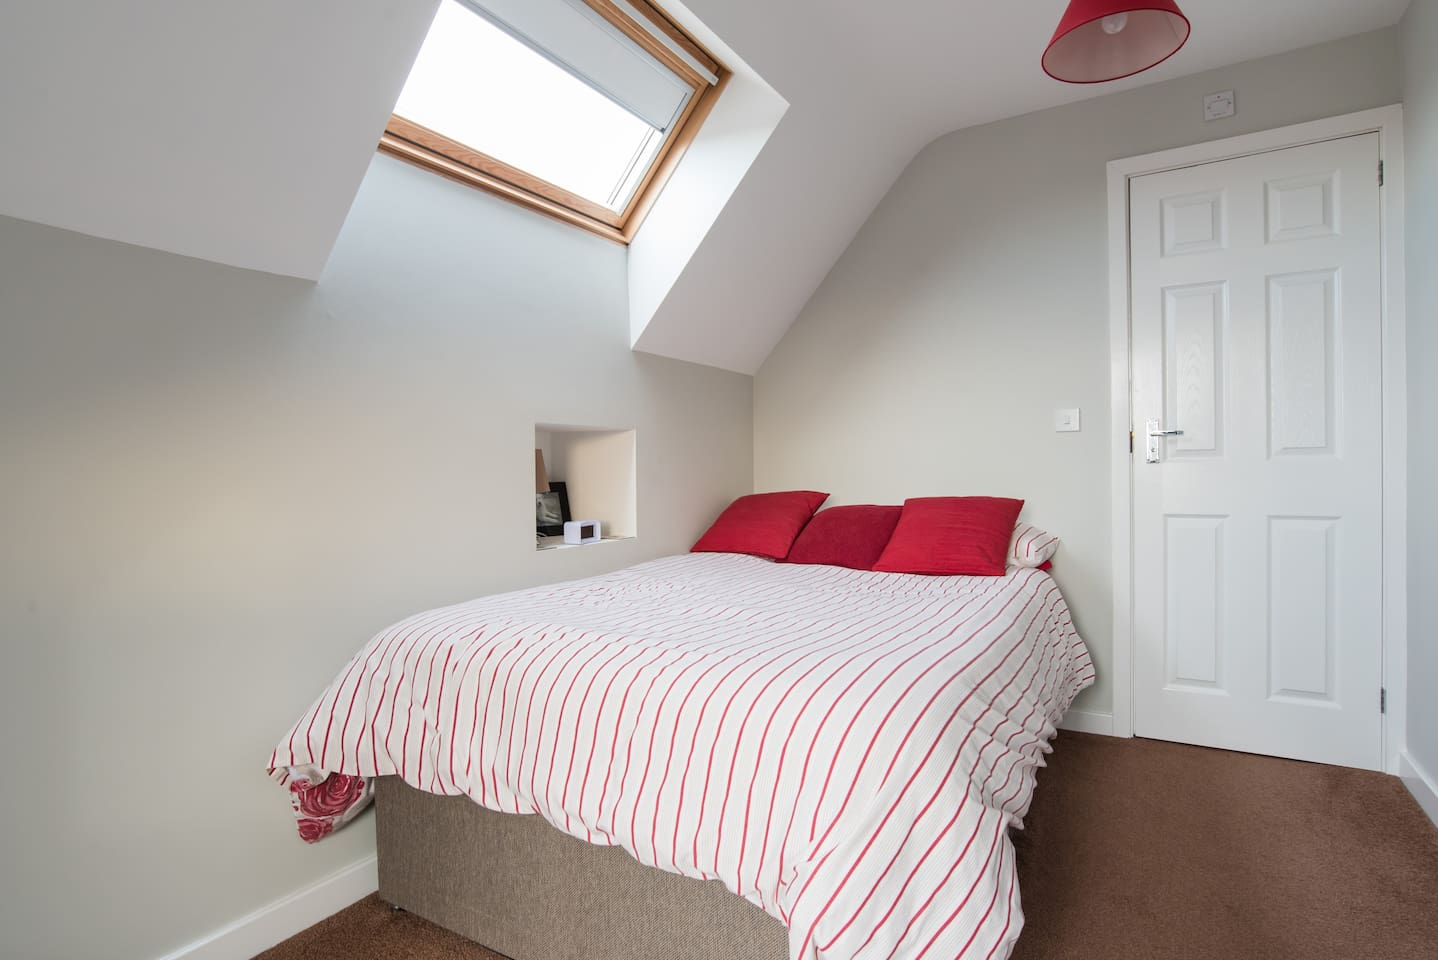 The skylight makes the room light and airy but don't worry the sun won't wake you as a blackout blind is fitted to the window!